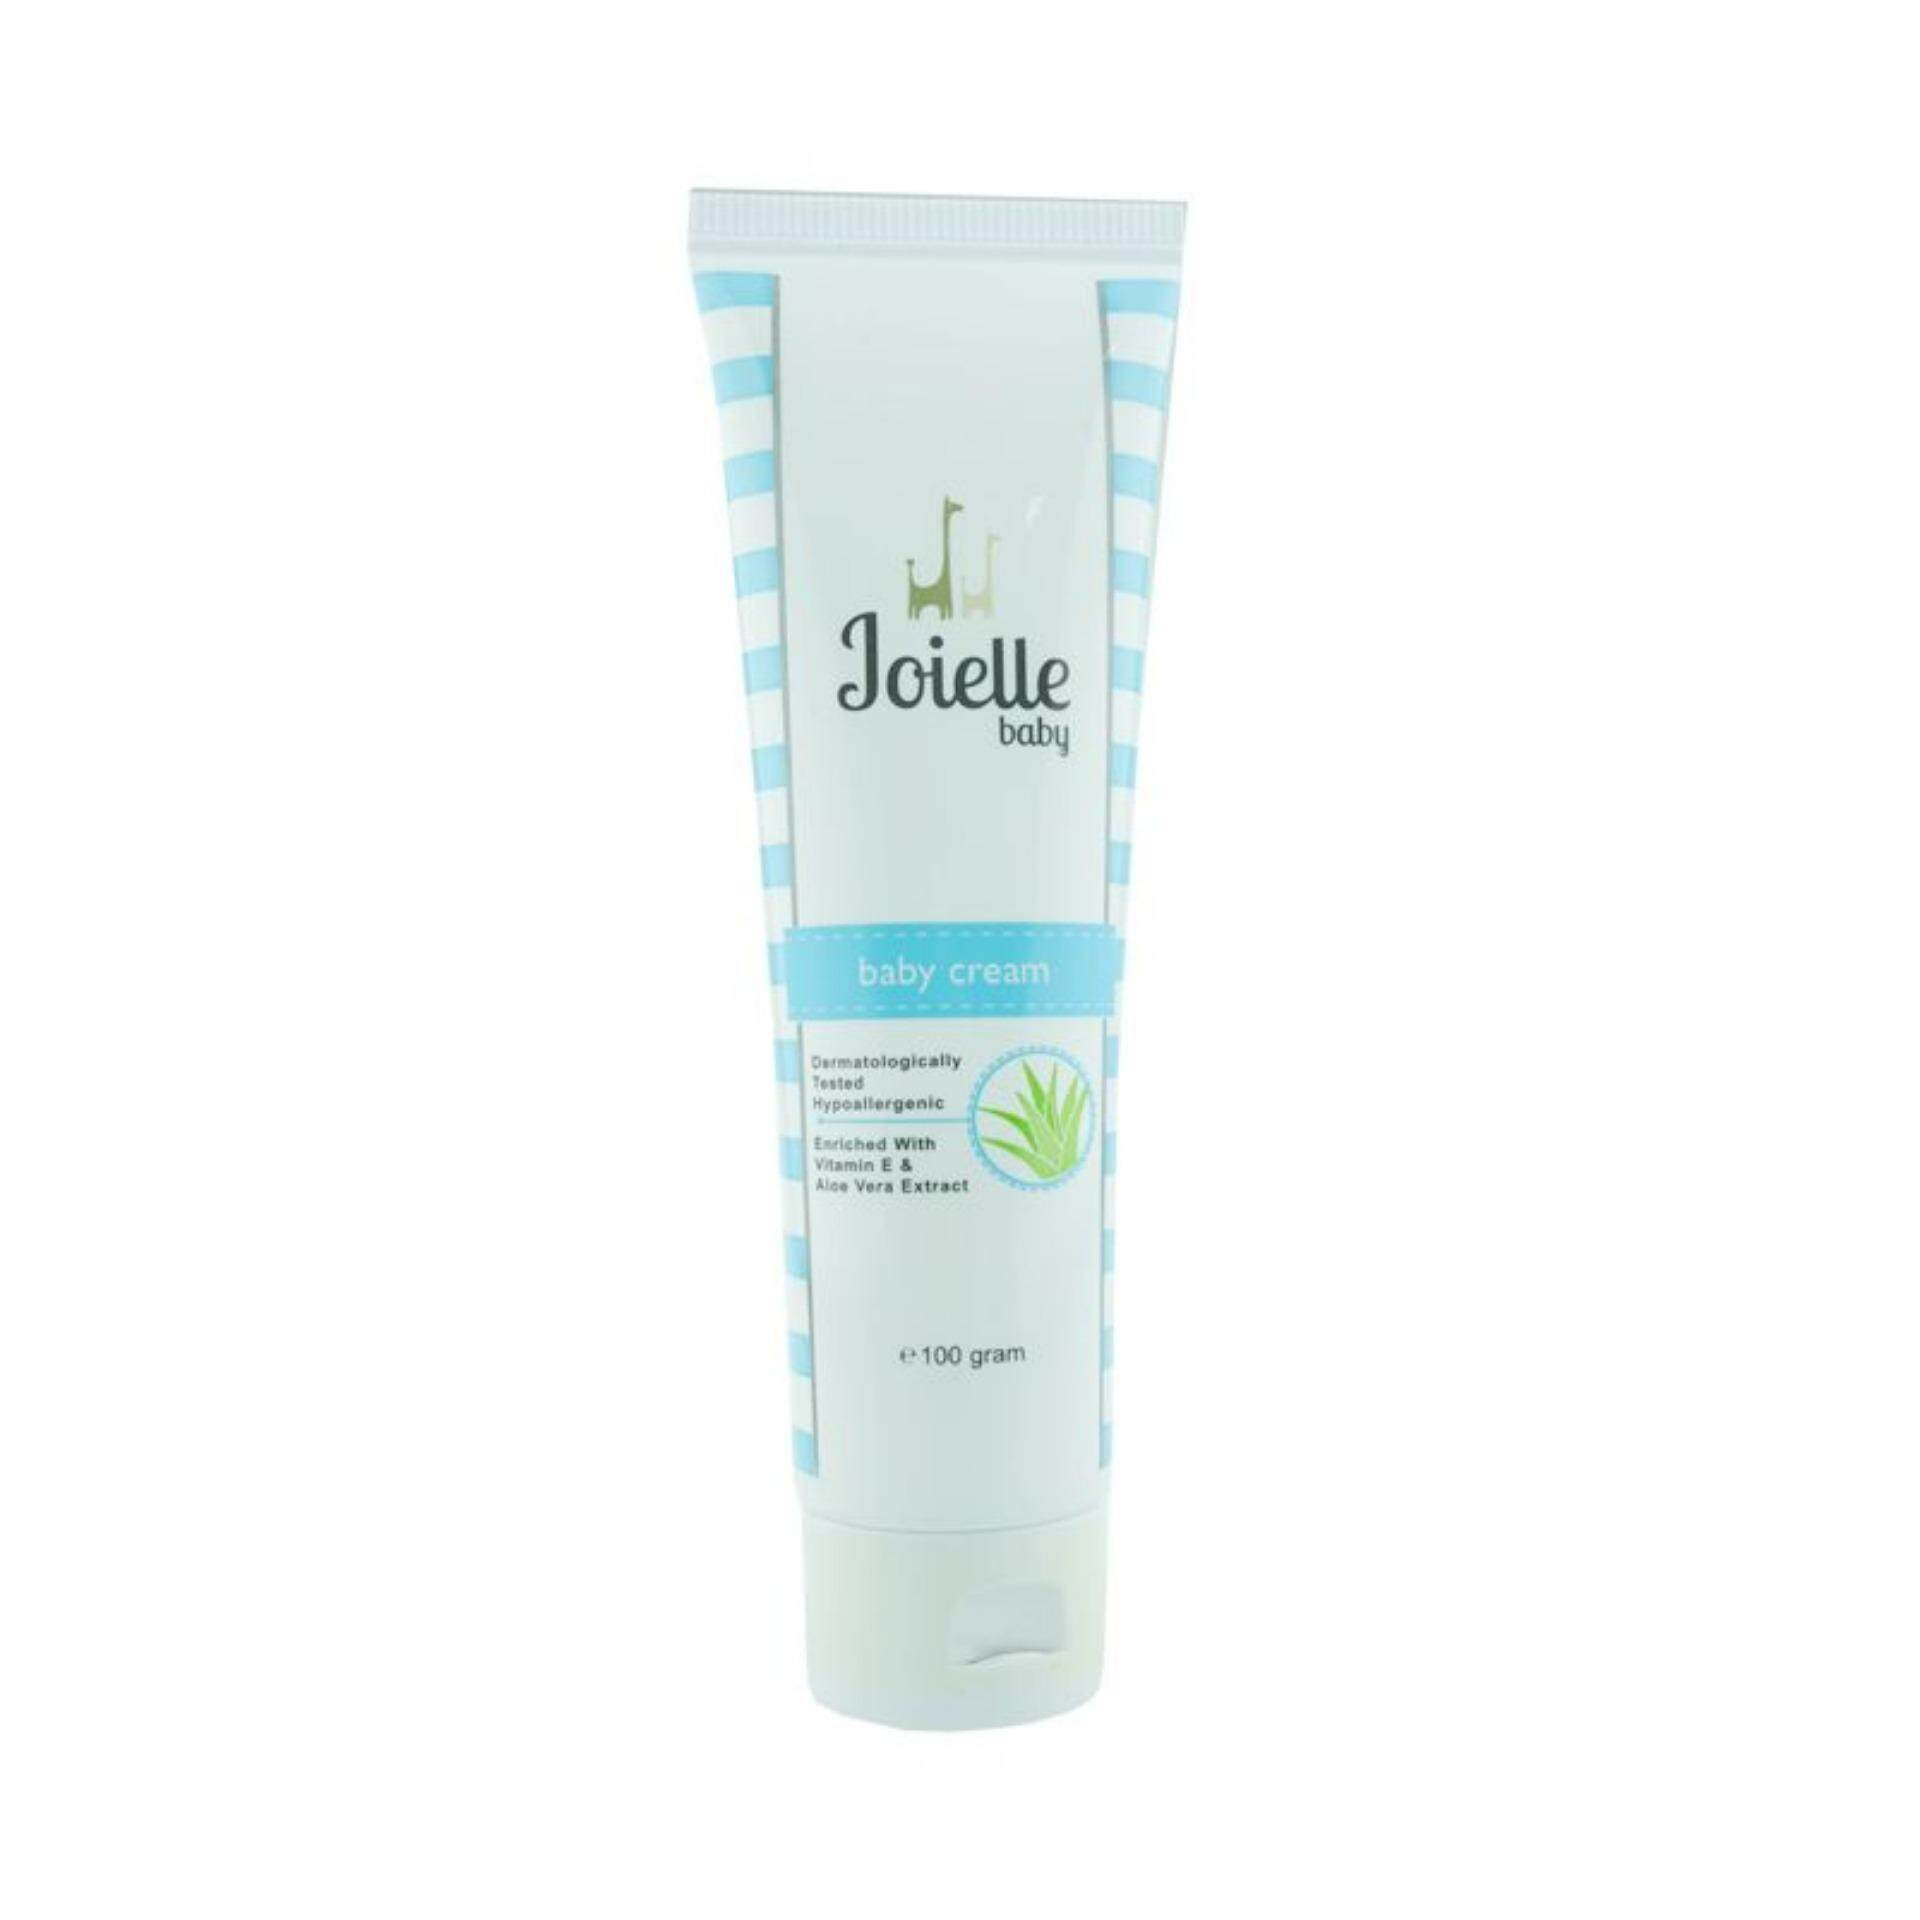 Joielle Baby Cream with Vitamin E & Aloe Vera 100g